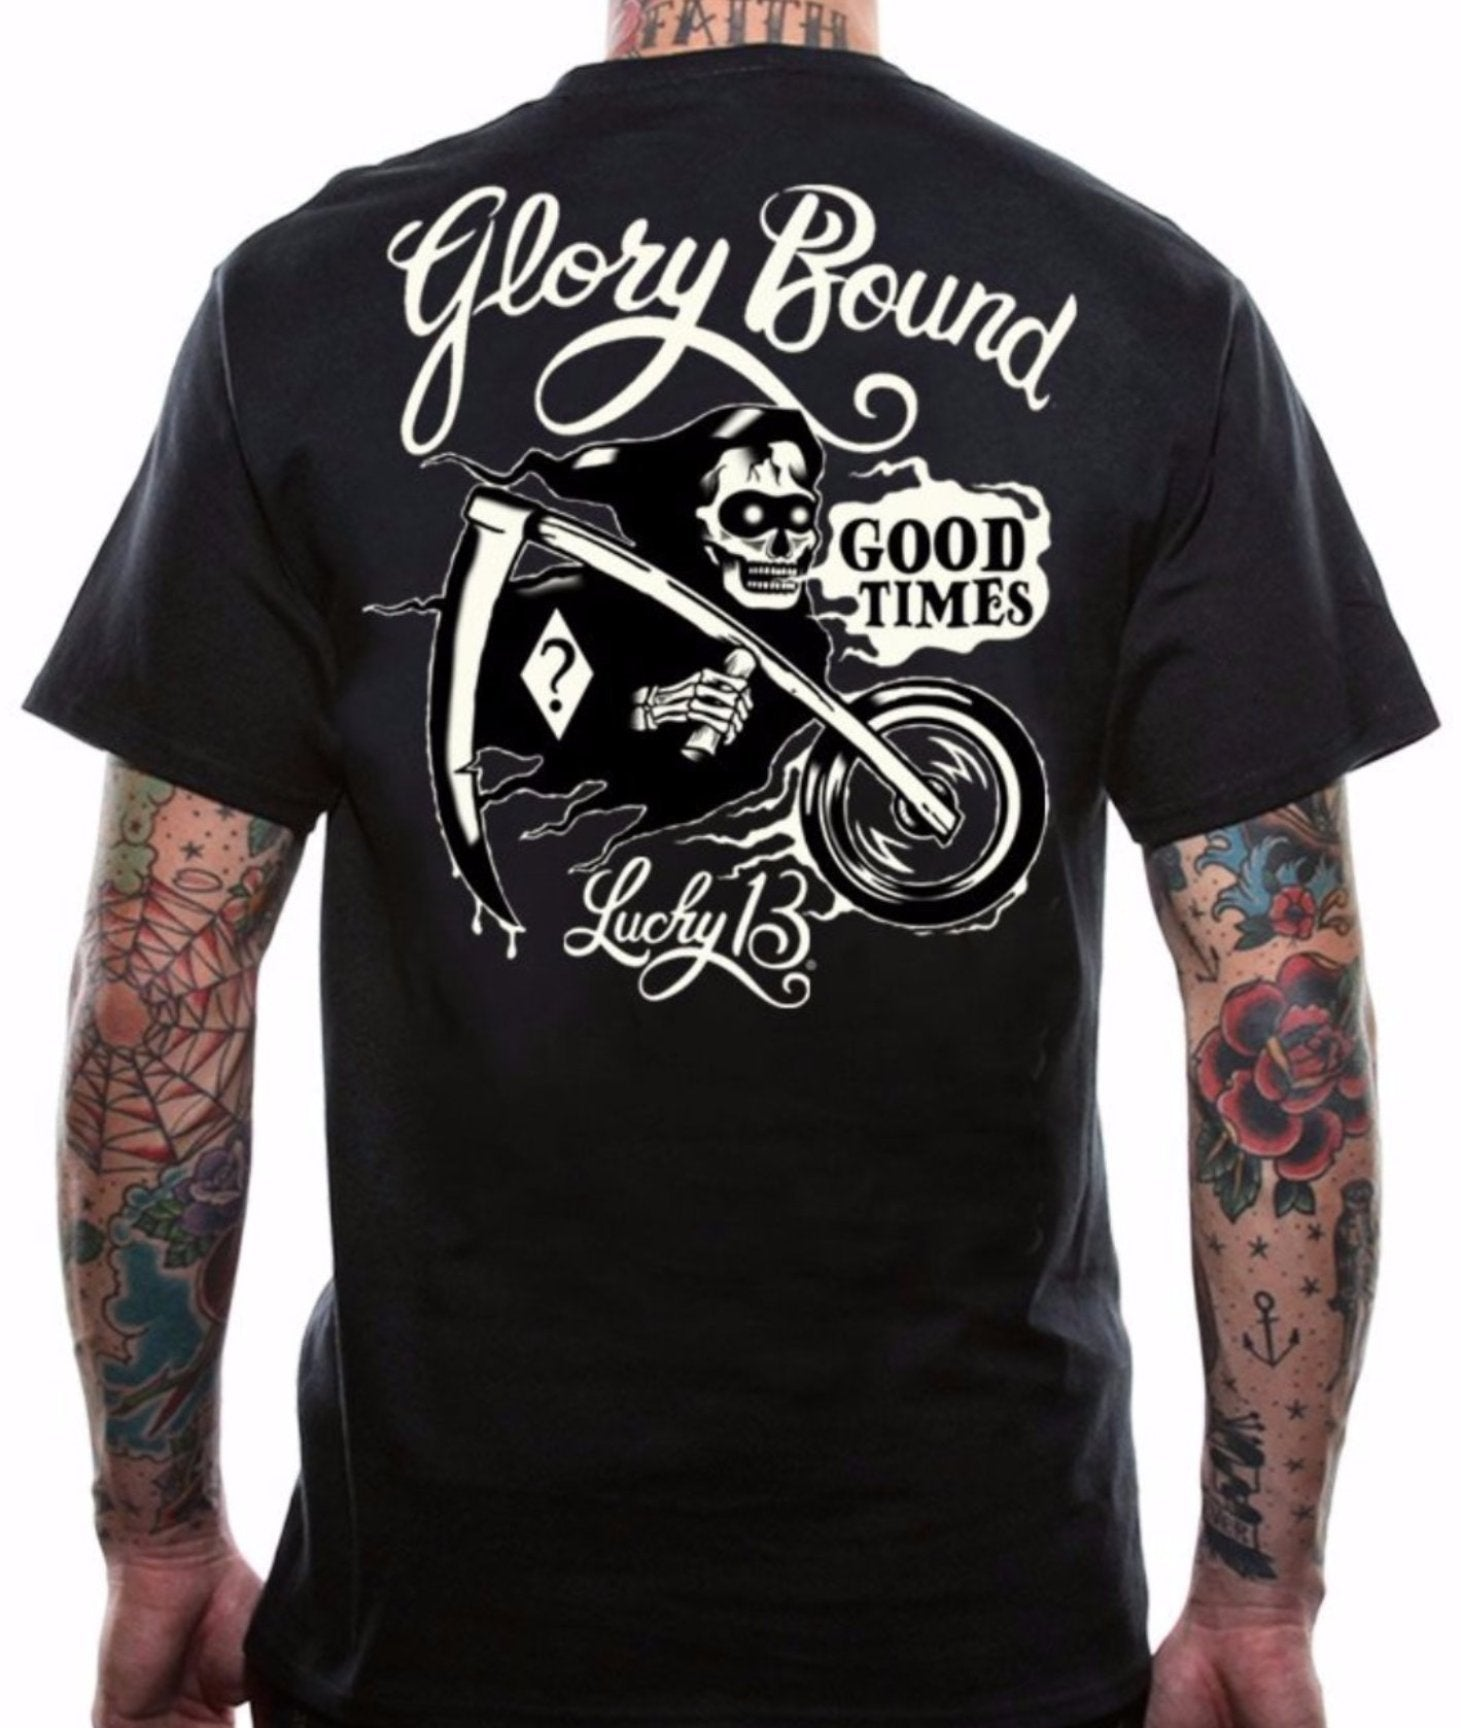 The GLORY BOUND Tee Shirt - LAST ONE IS A SMALL!